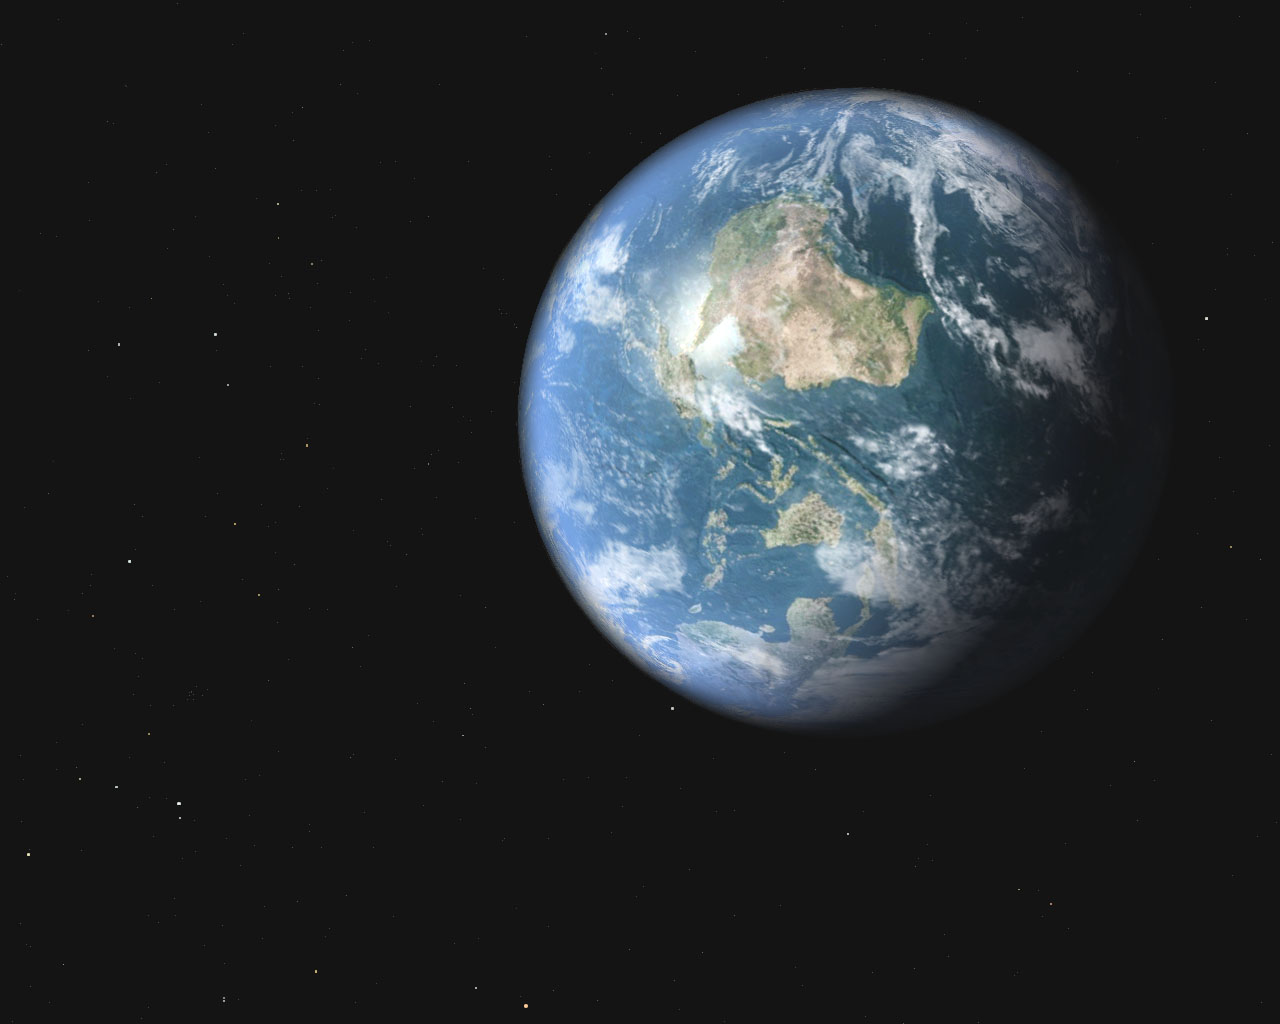 earth from outer space - photo #8